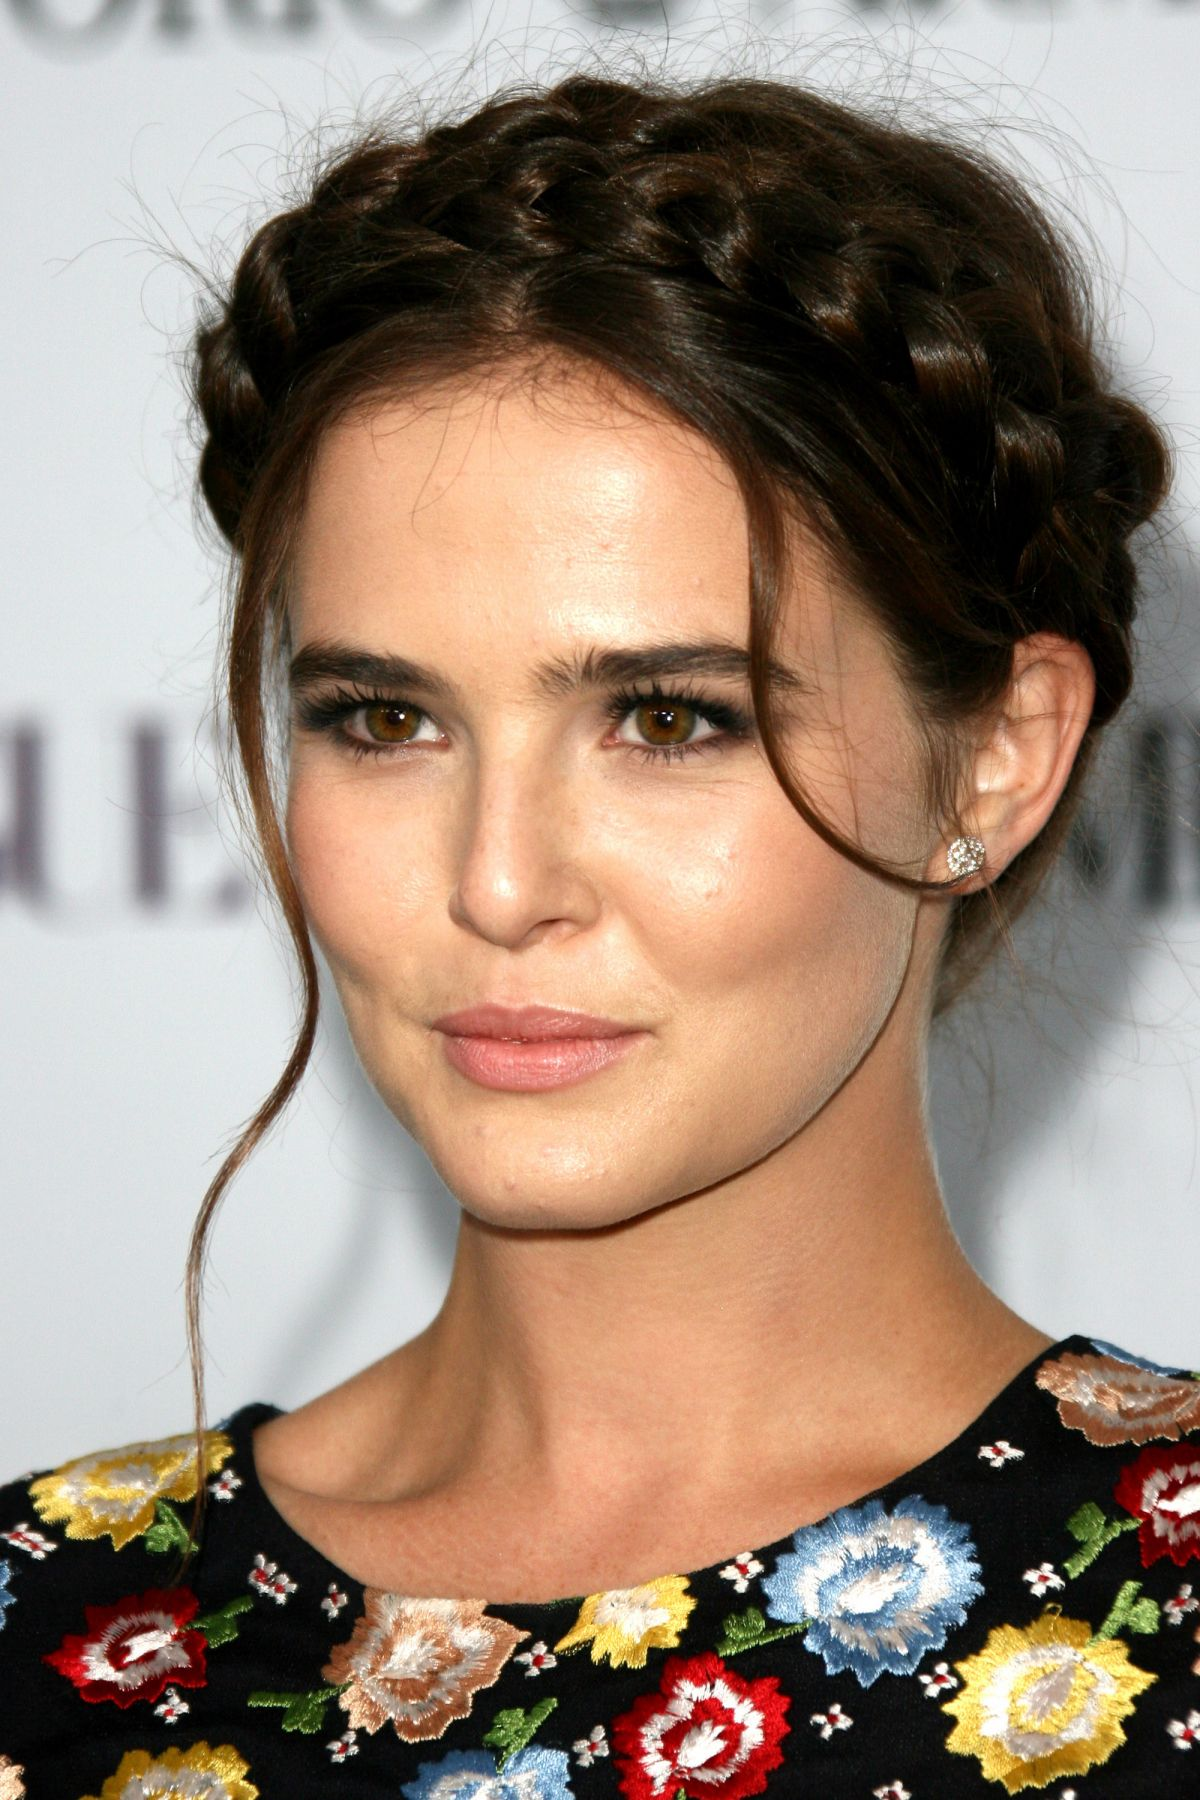 zoey deutch wikipediazoey deutch gif, zoey deutch tumblr, zoey deutch vk, zoey deutch and avan jogia, zoey deutch gif hunt, zoey deutch photoshoot, zoey deutch png, zoey deutch фото, zoey deutch gallery, zoey deutch site, zoey deutch screencaps, zoey deutch films, zoey deutch gif tumblr, zoey deutch вк, zoey deutch wallpaper, zoey deutch wikipedia, zoey deutch icons, zoey deutch фильмы, zoey deutch source, zoey deutch interview